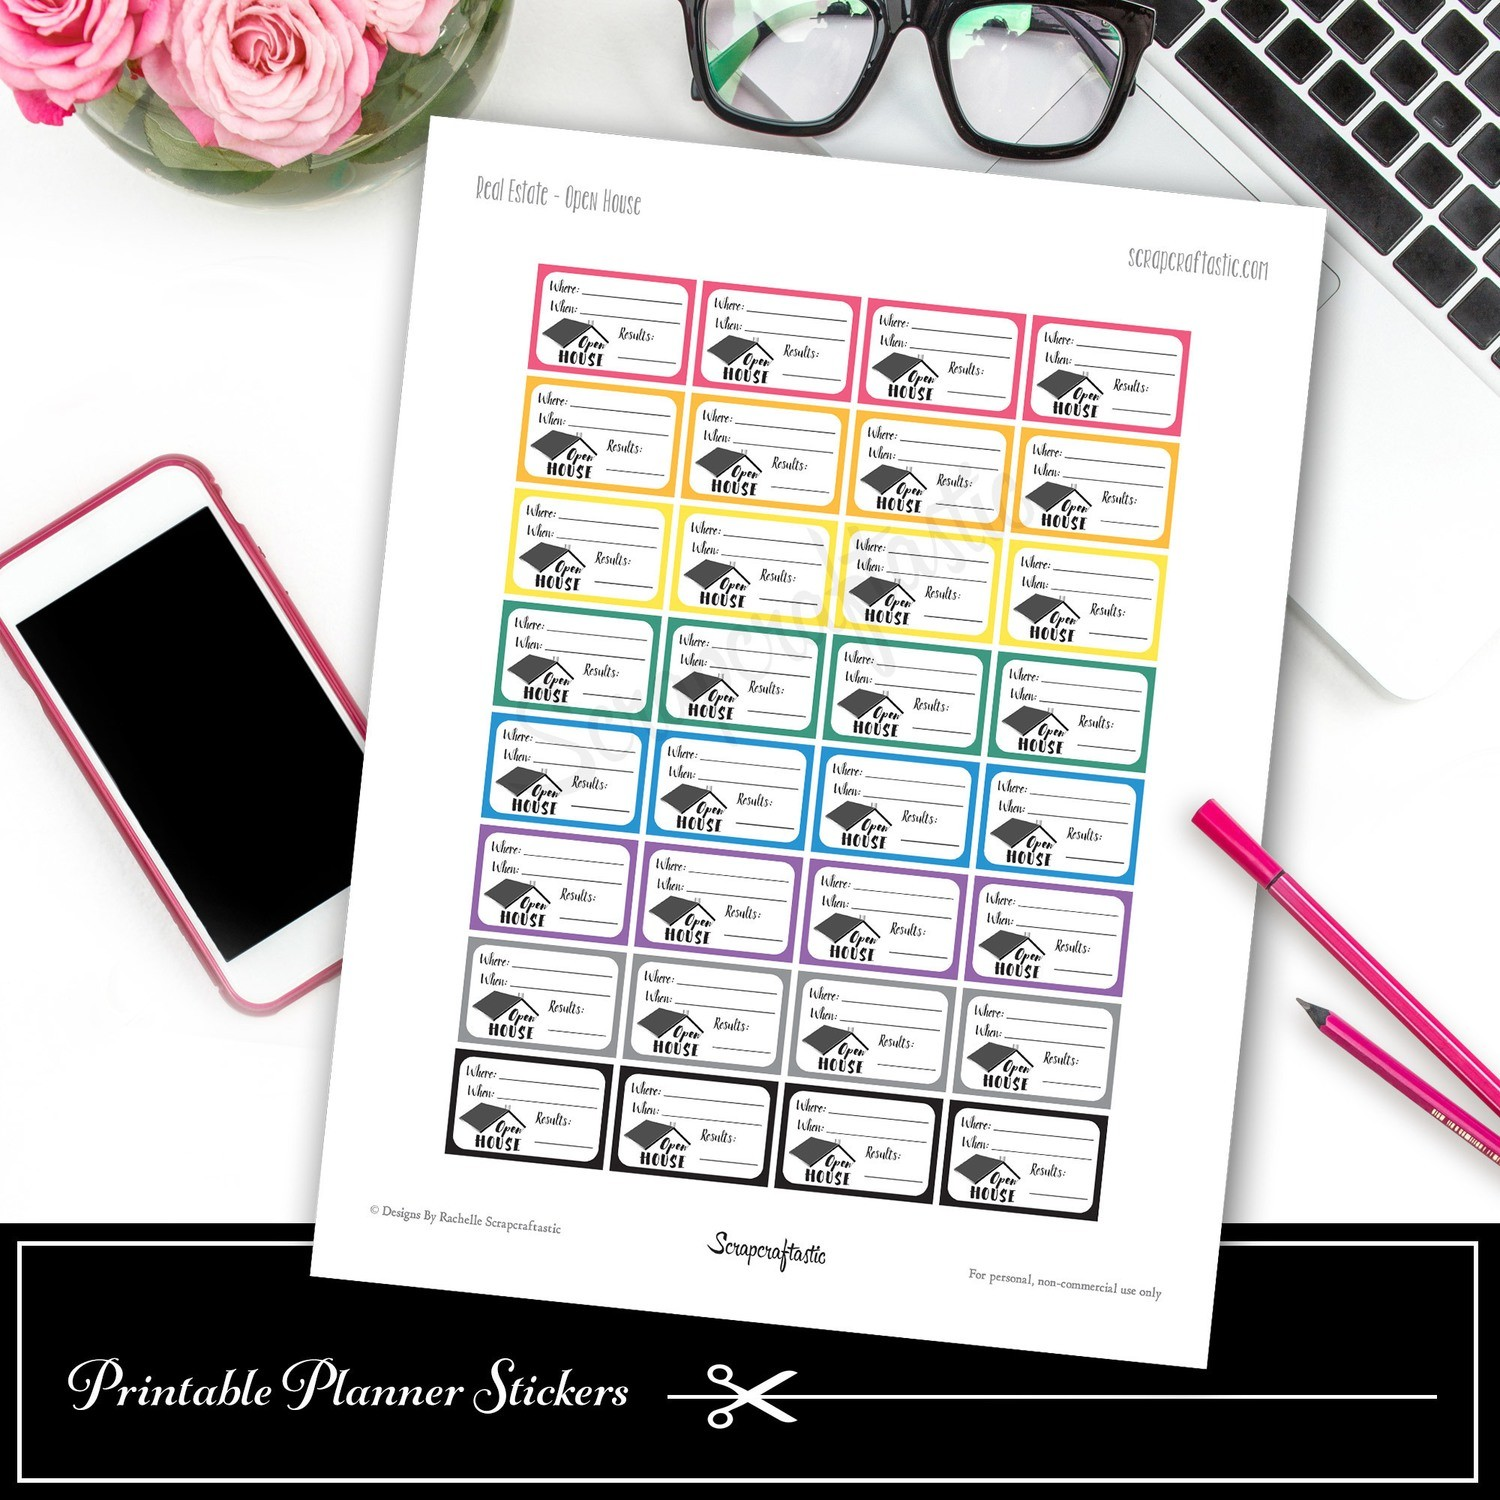 Real Estate Open House Printable Planner Stickers - Half Box